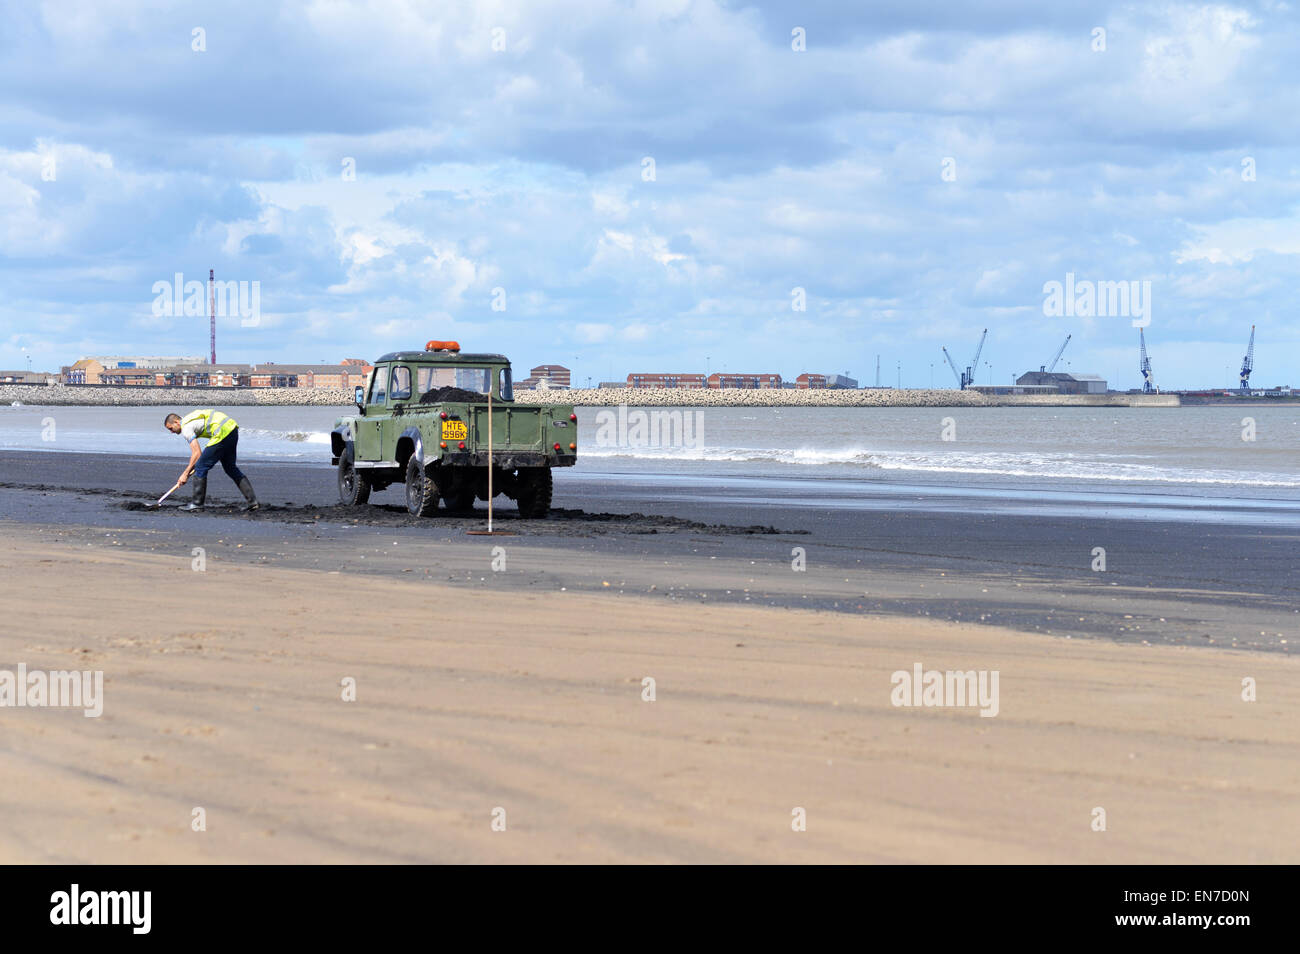 Man collecting sea-coal on Seaton Carew beach near Hartlepool, UK - Stock Image